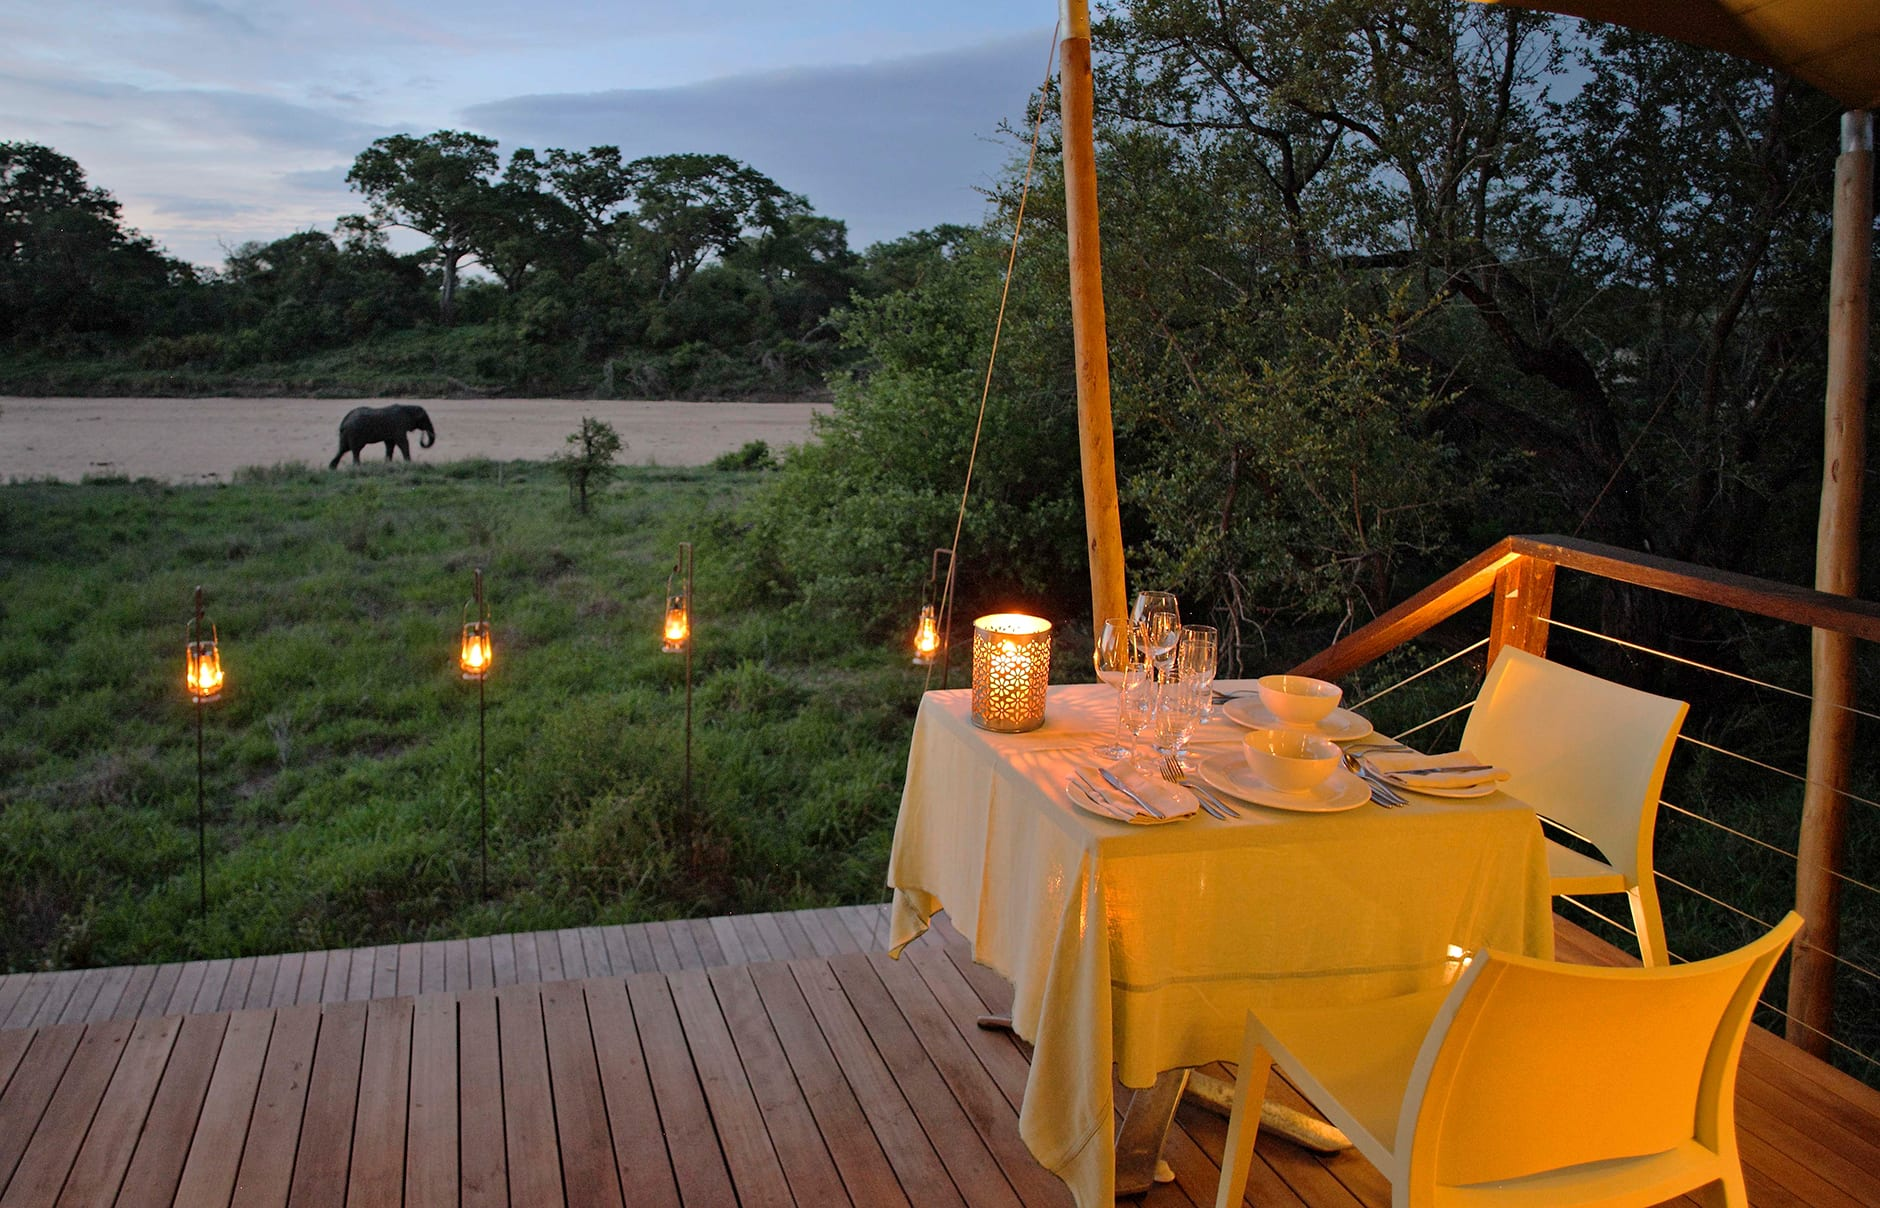 &Beyond Ngala Tented Camp, Kruger National Park, South Africa. Review by TravelPlusStyle. Photo © &Beyond